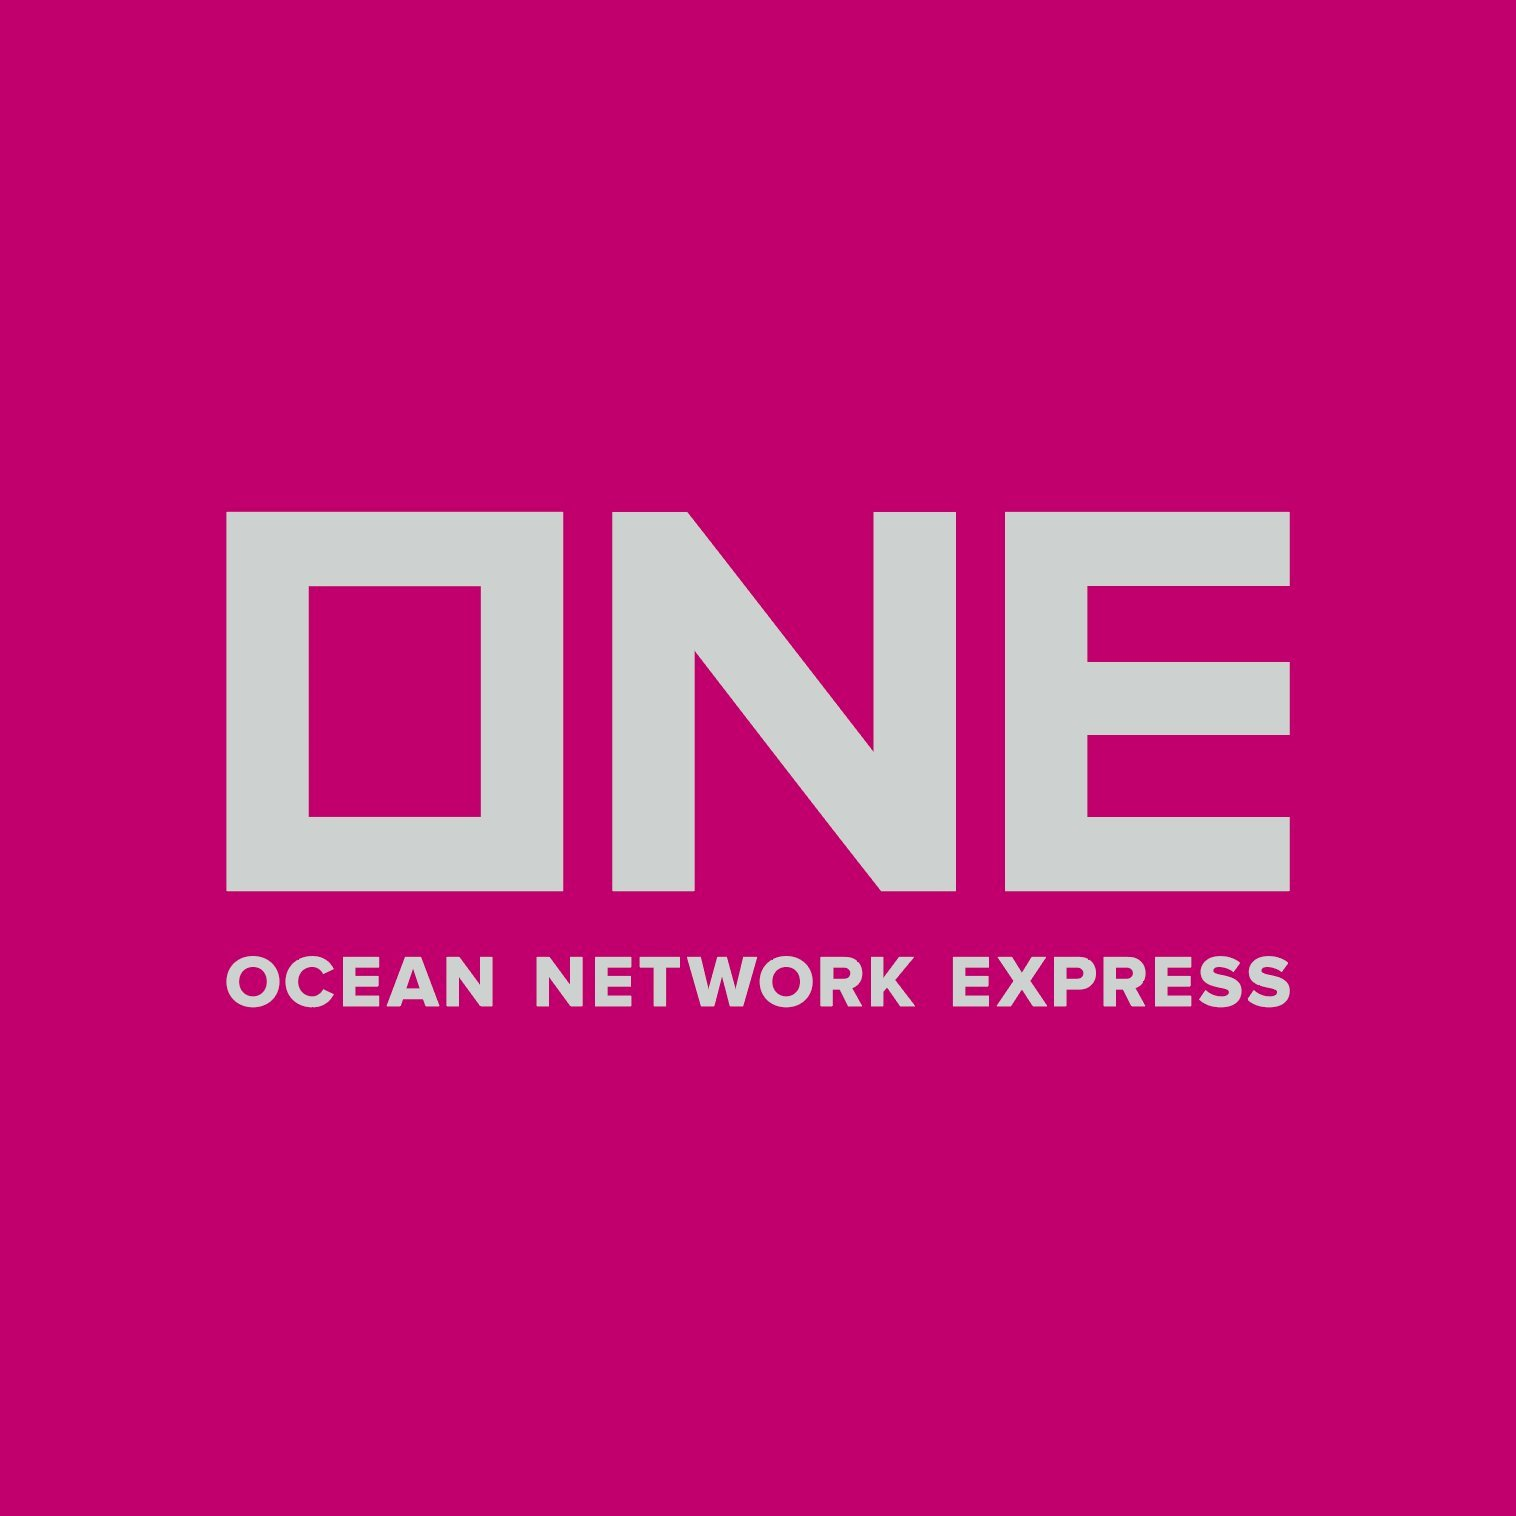 Ocean Network Express (Vietnam) Co., Ltd.